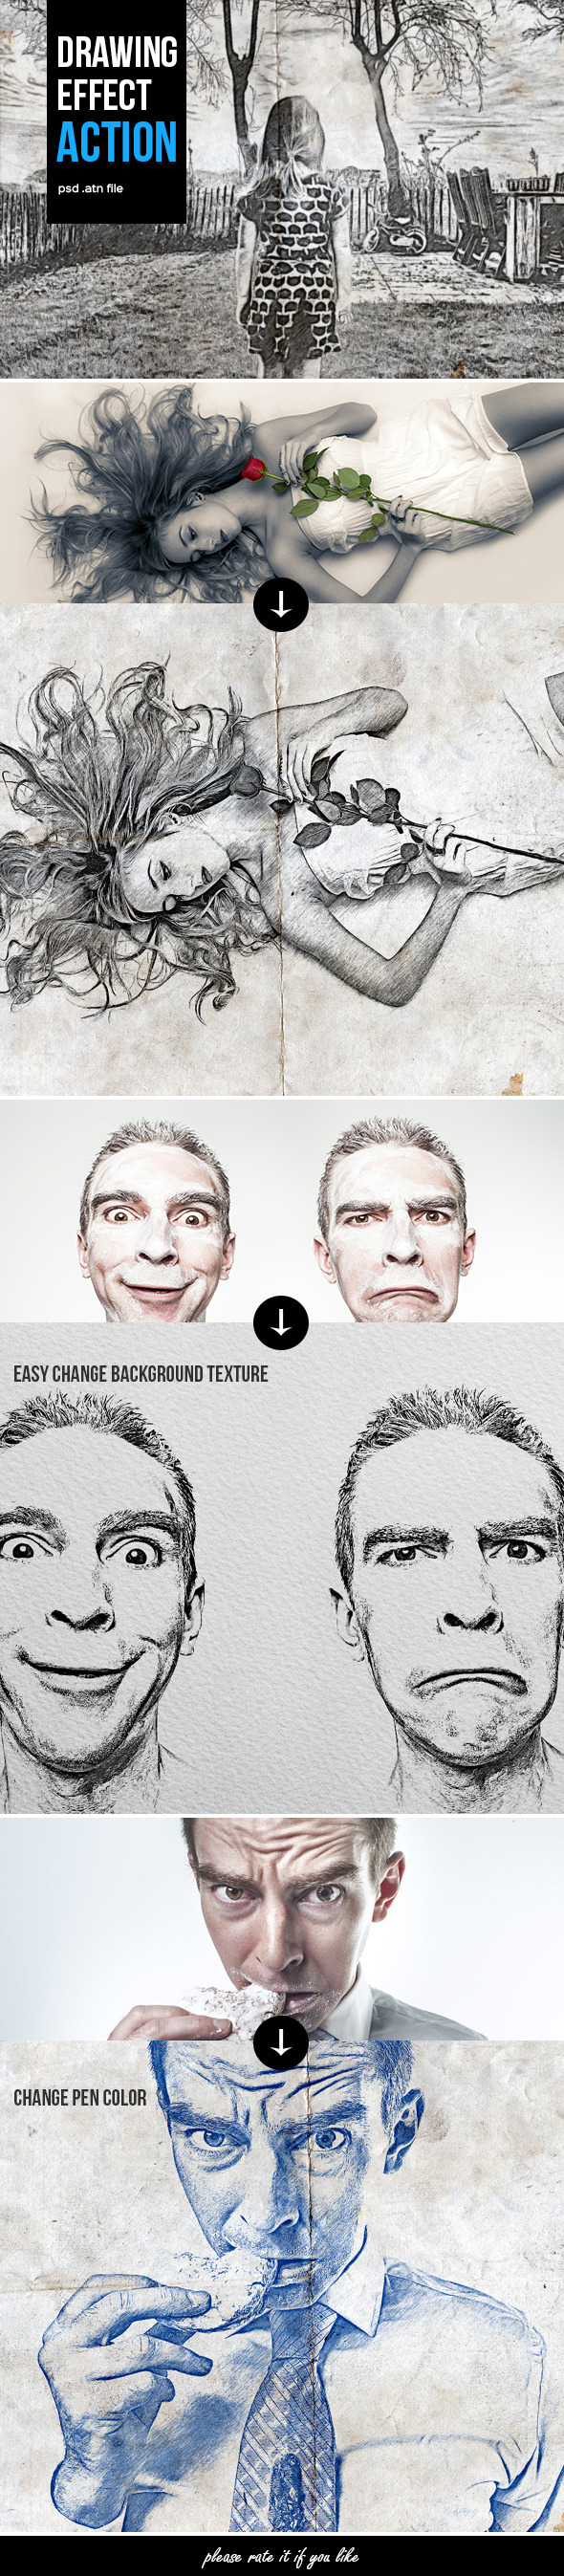 GraphicRiver Drawing Action 10035660